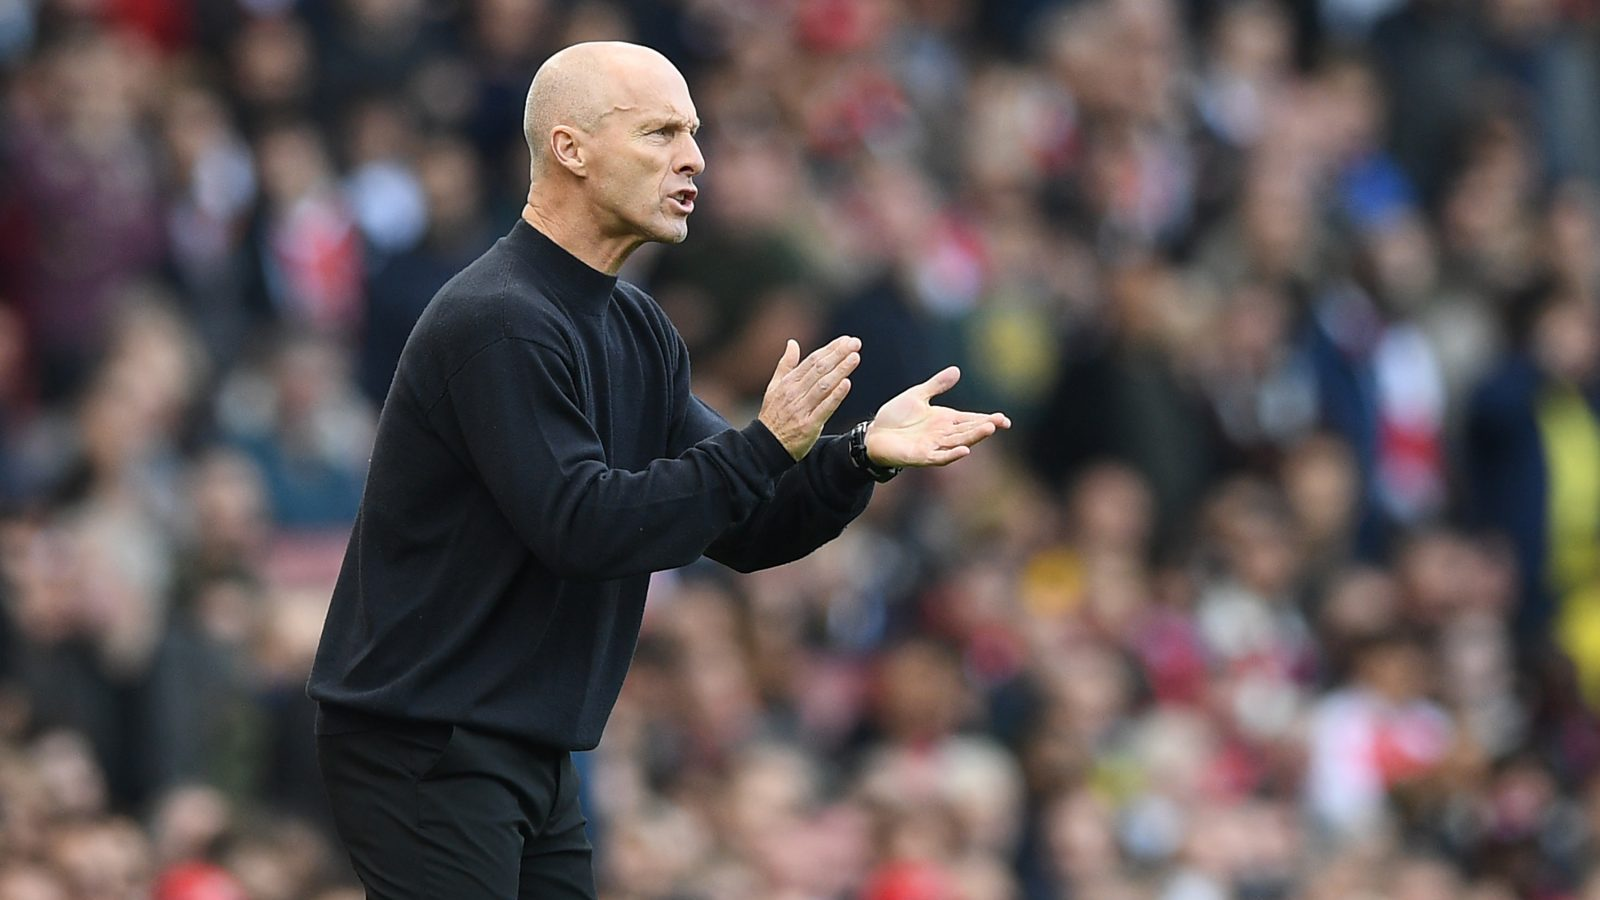 Bob Bradley fired by Swansea City after just 85 days in charge